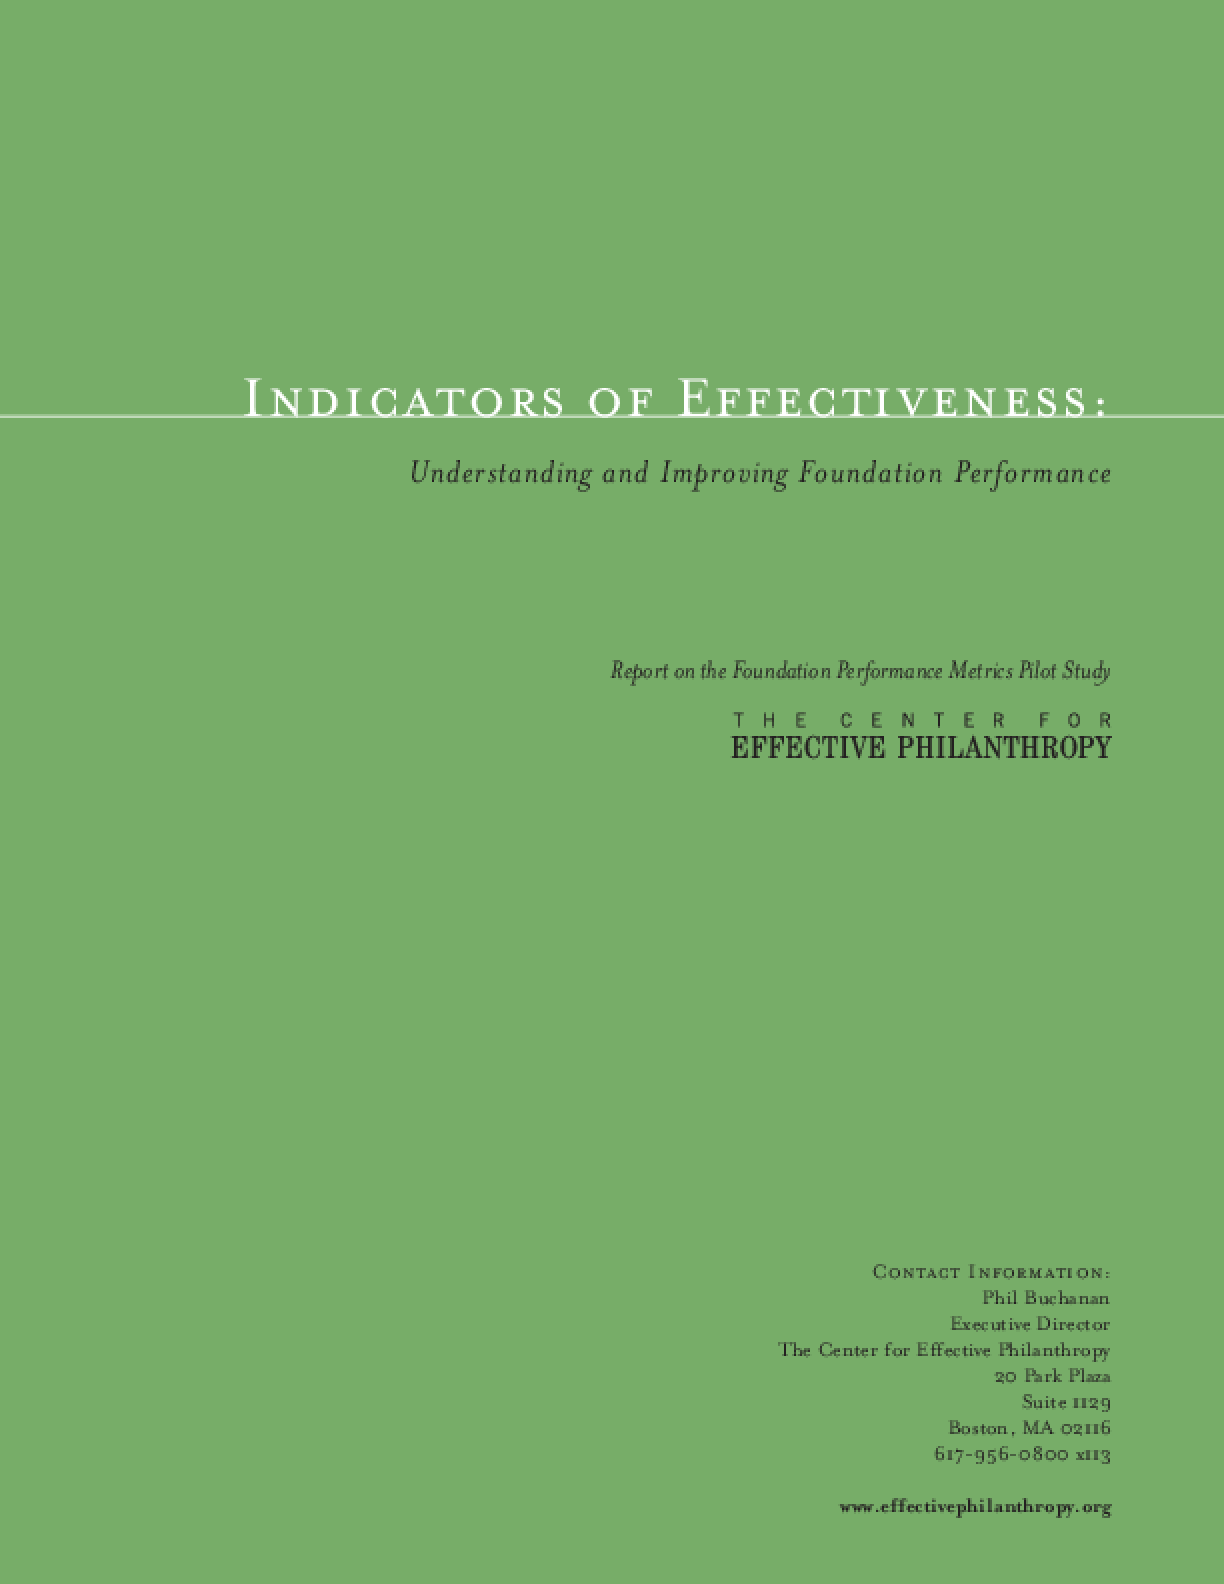 Indicators of Effectiveness: Understanding and Improving Foundation Performance